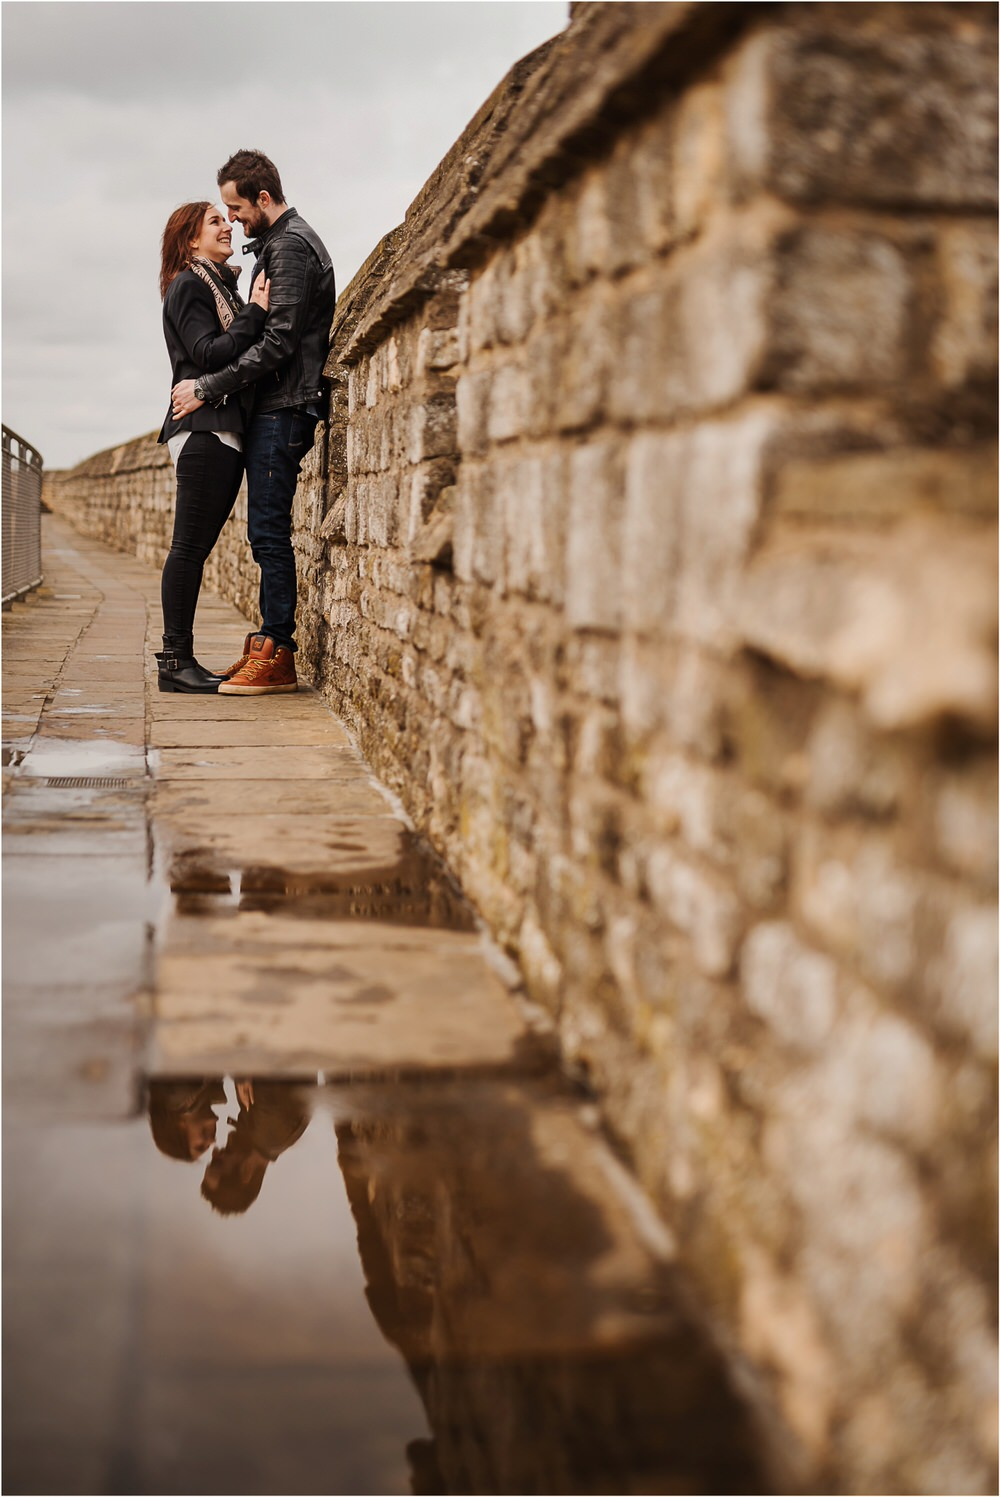 skegness uk england great britain photographer wedding engagement session photoshoot lincolnshire recommended photography 0027.jpg